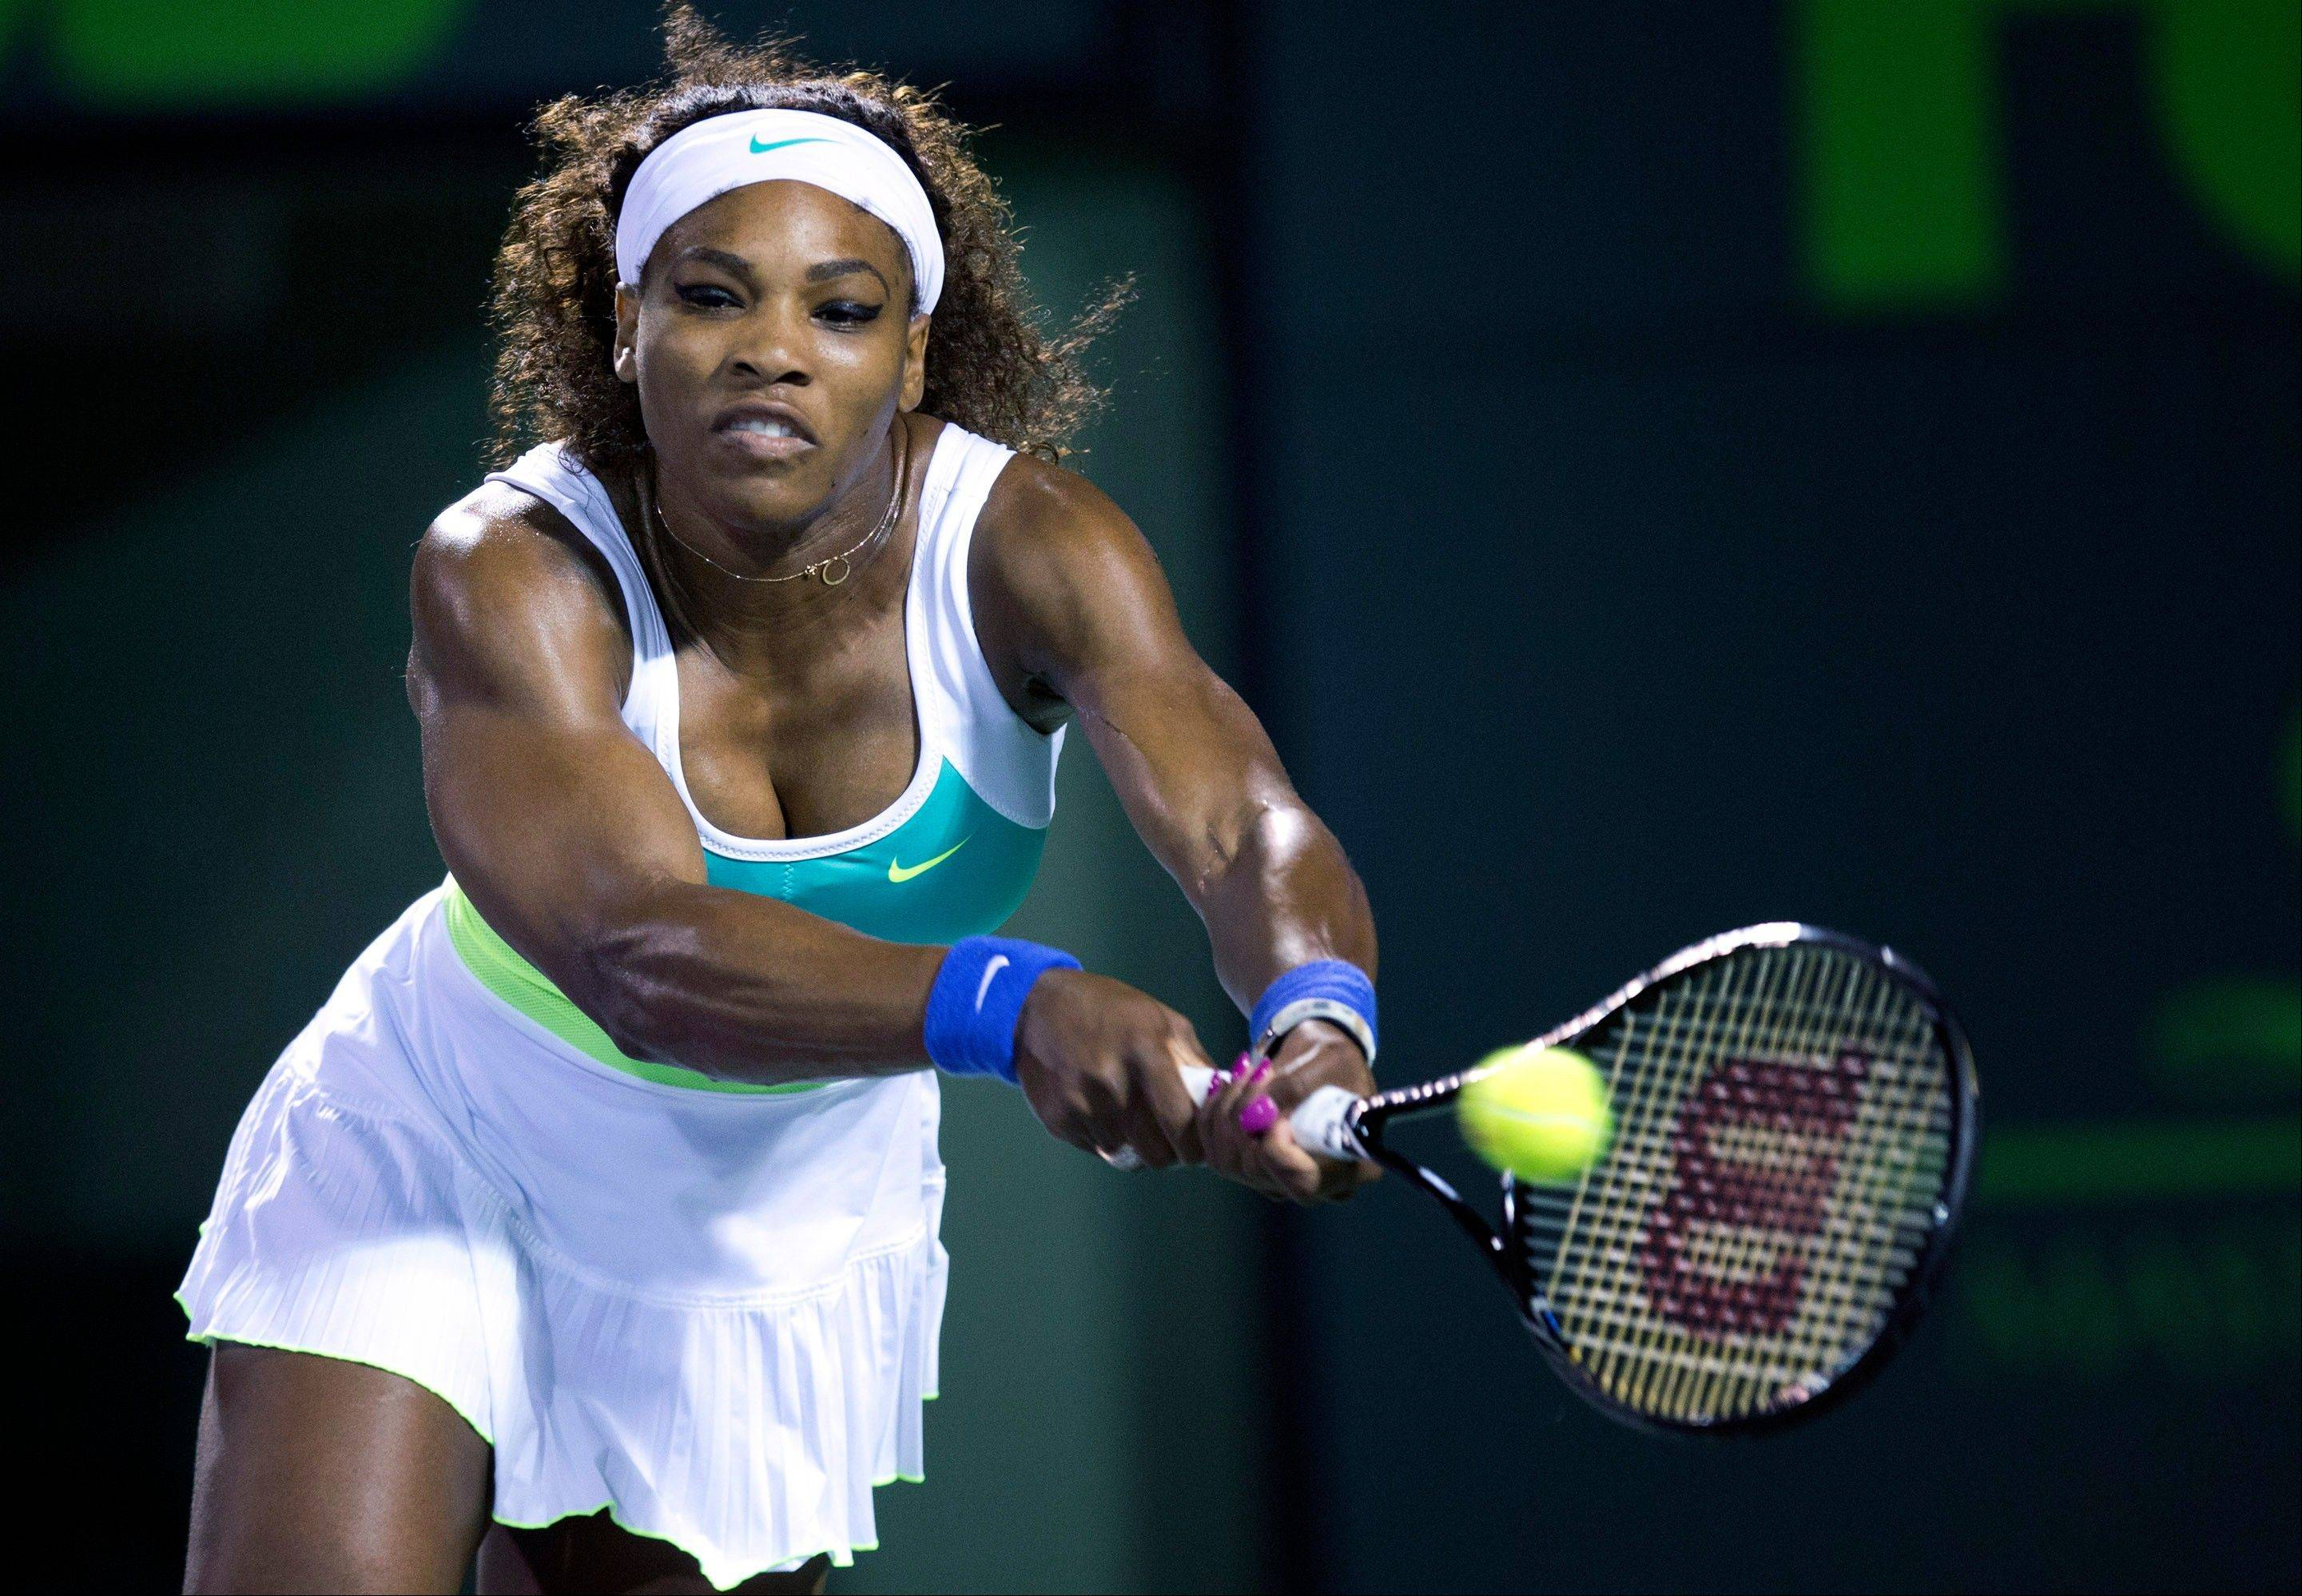 Serena Williams returns the ball to Ayumi Morita, of Japan, during the Sony Open tennis tournament, Saturday, March 23, 2013, in Key Biscayne, Fla.